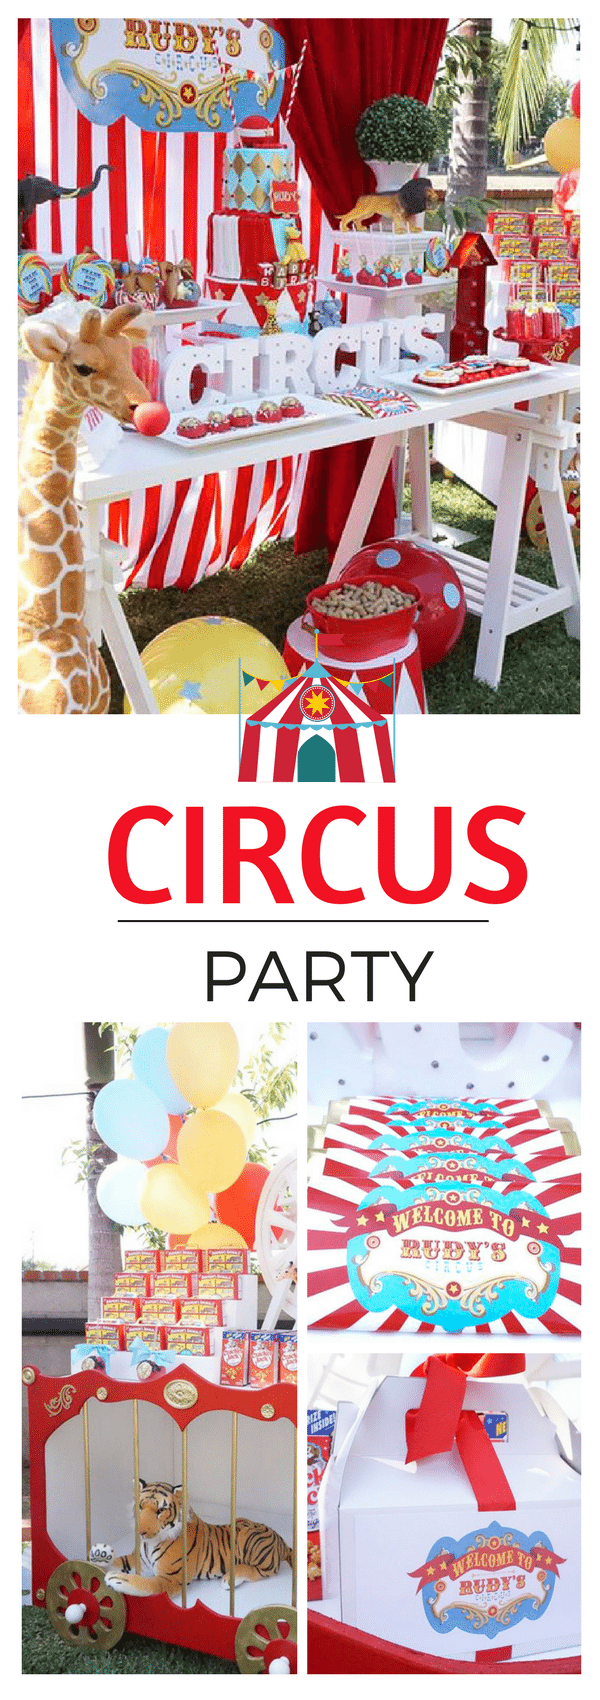 This adorable circus party had a three tiered cake, lion in a cage, decorations with a big top and everything a carnival would need for a themed birthday party.